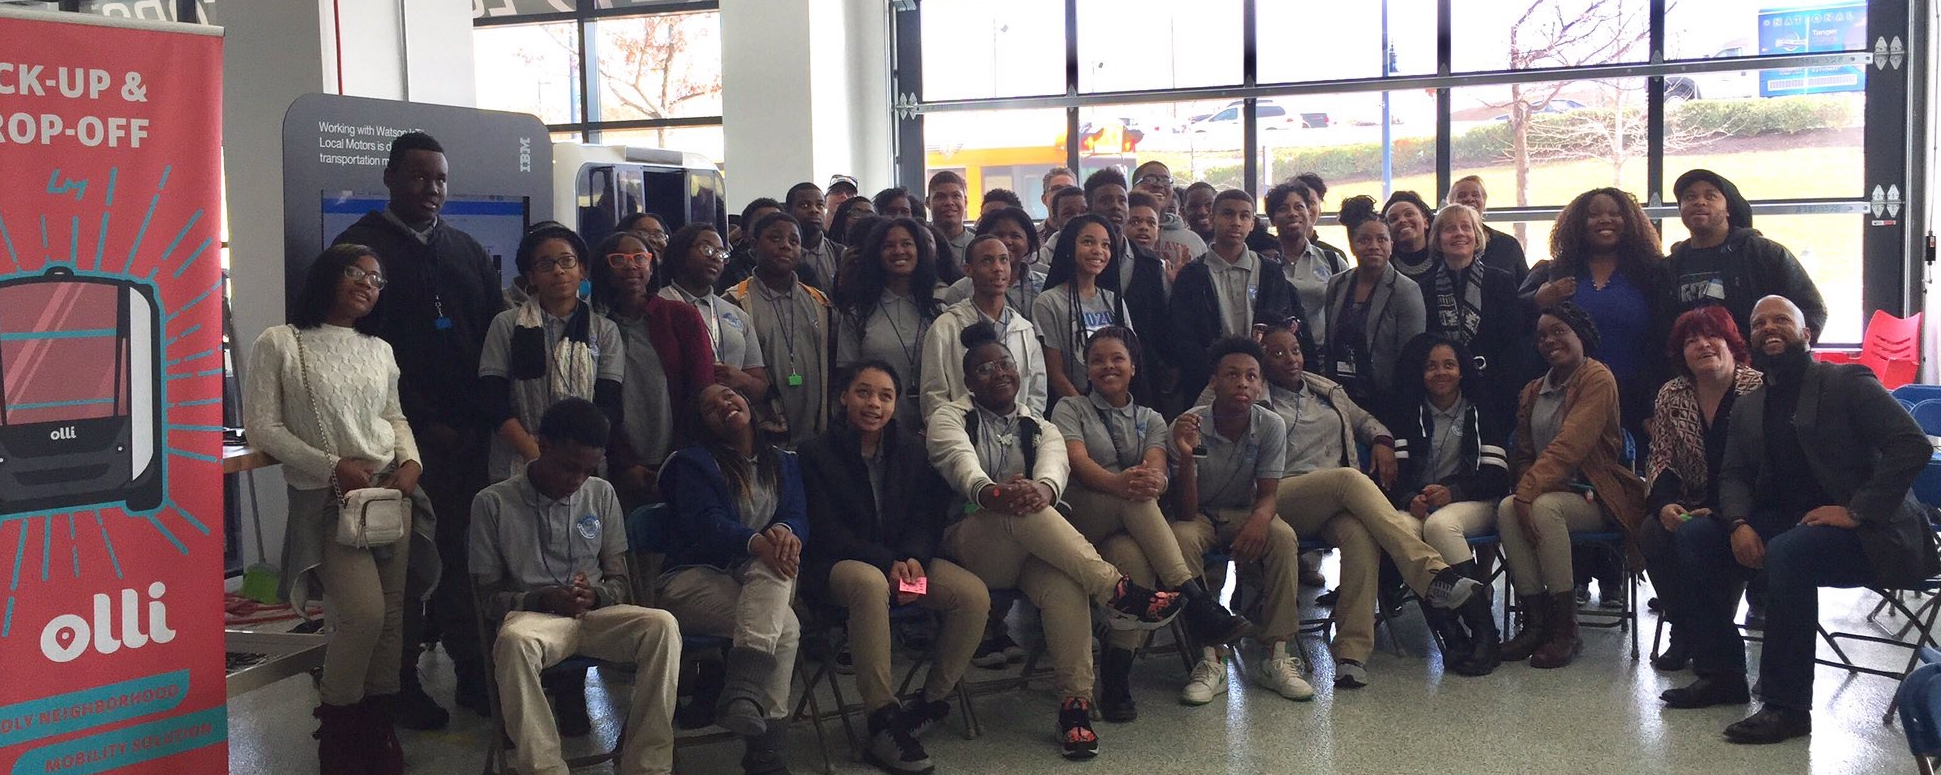 Group shot of all of the students from Carver Vocational-Technical High who participated in the AccessibleOlli workshop.